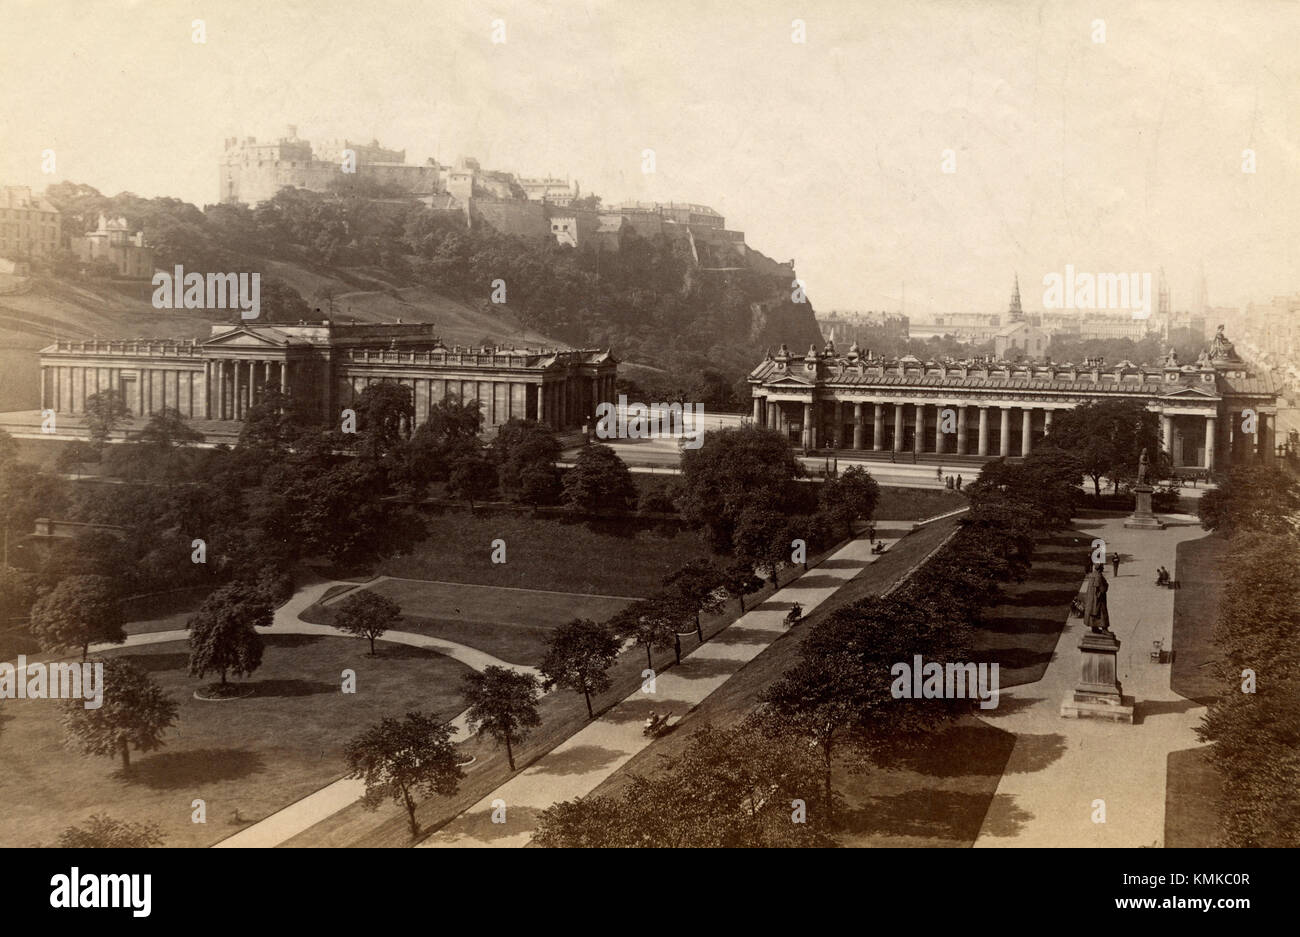 Edinburgh Castle, National Gallery and Royal institution, Scotland 1880s - Stock Image